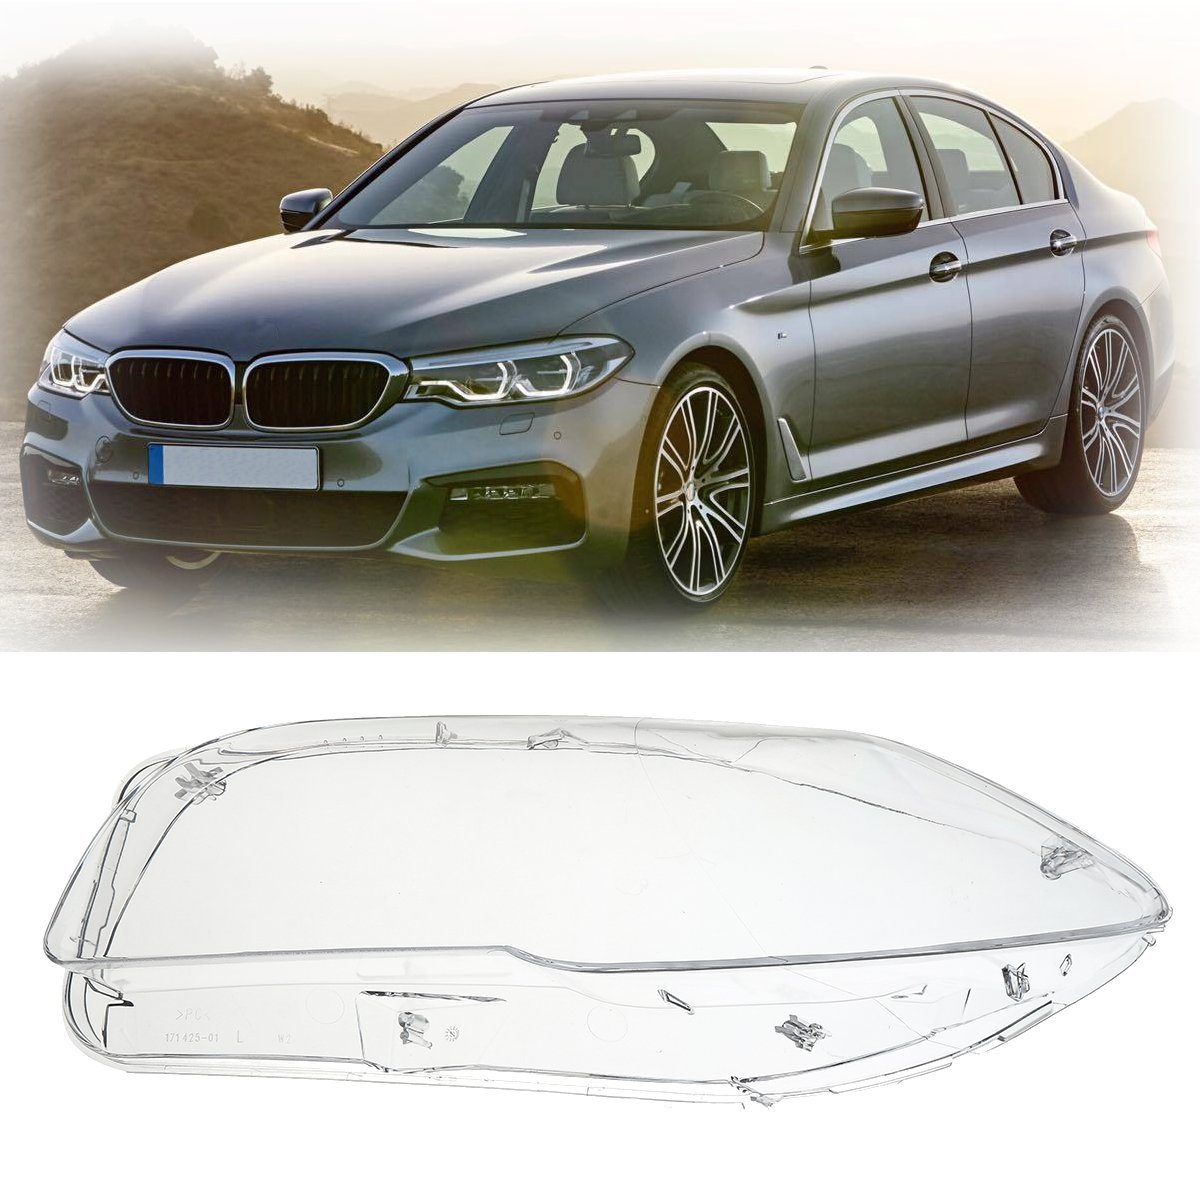 Left/ Right Side Headlight Clear Lens Cover For BMW F10 F18 520 523 525 535 530 2010-2014 right side replacement car back rear reflector warn light for bmw 5 series 520 528 530 535 550 f10 f18 2010 2013 3102 r